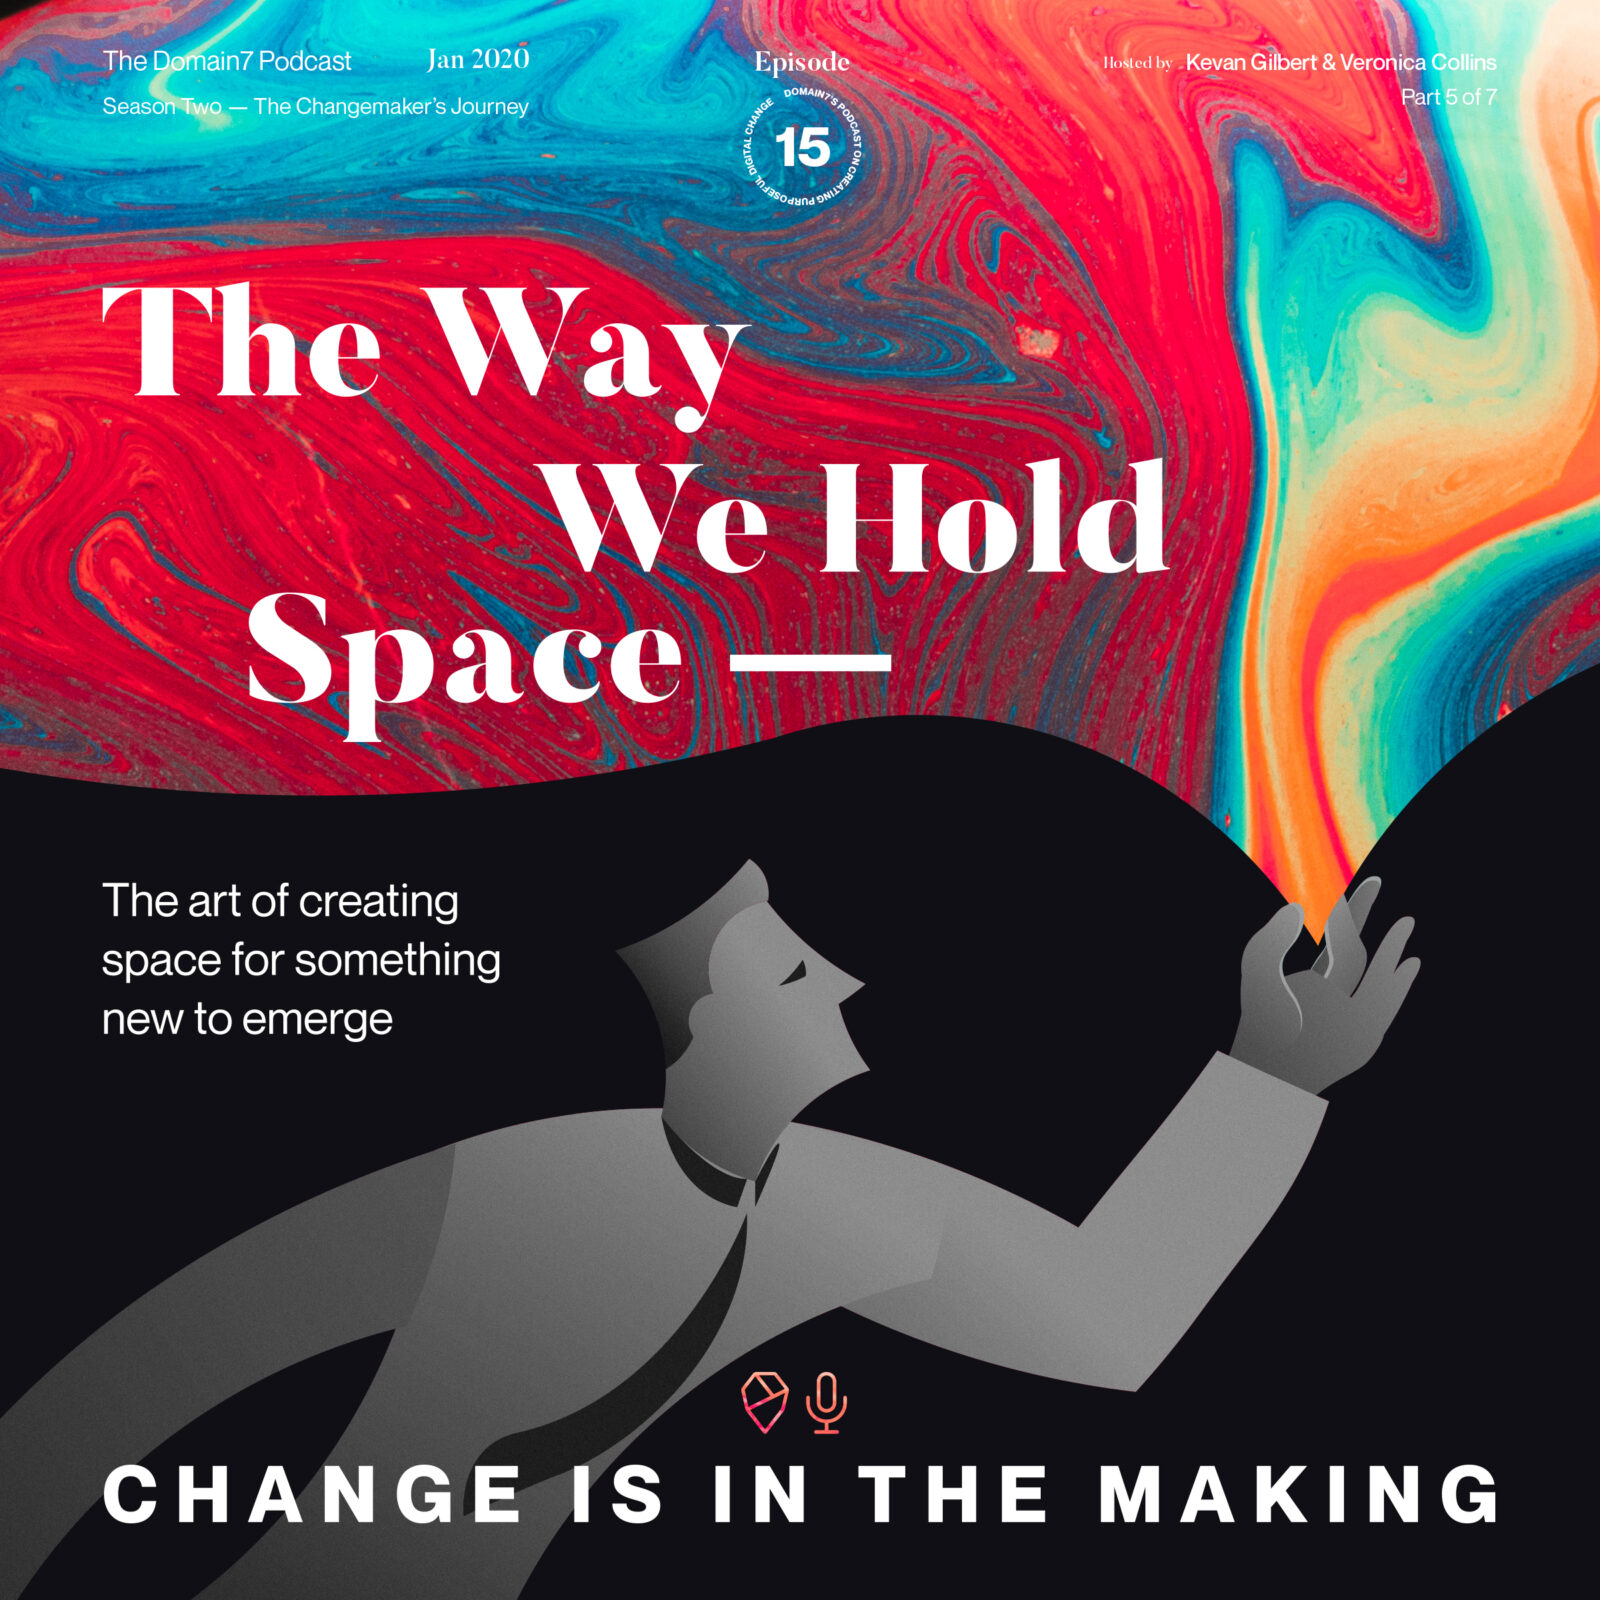 Episode 15: The Way We Hold Space - the Art of Creating Space for Something New to Emerge